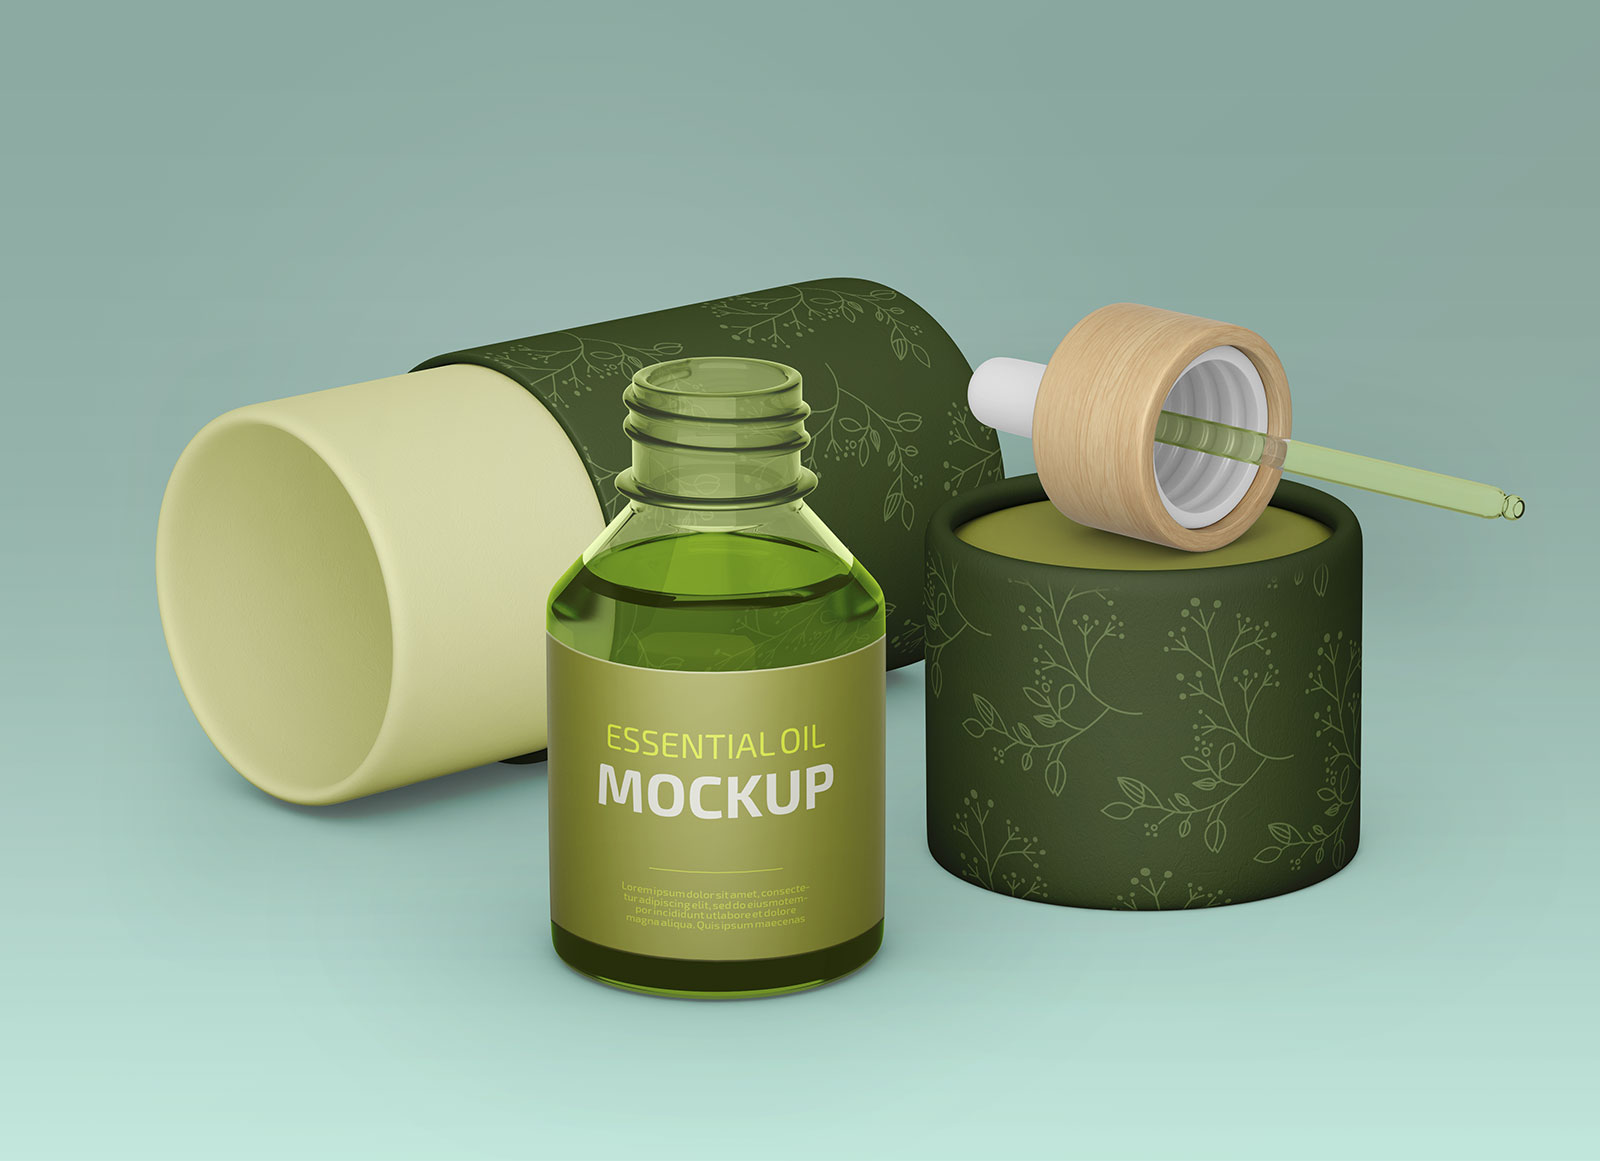 Free-Essential-Oil-Bottle-With-Tube-Packaging-Mockup-PSD-Set